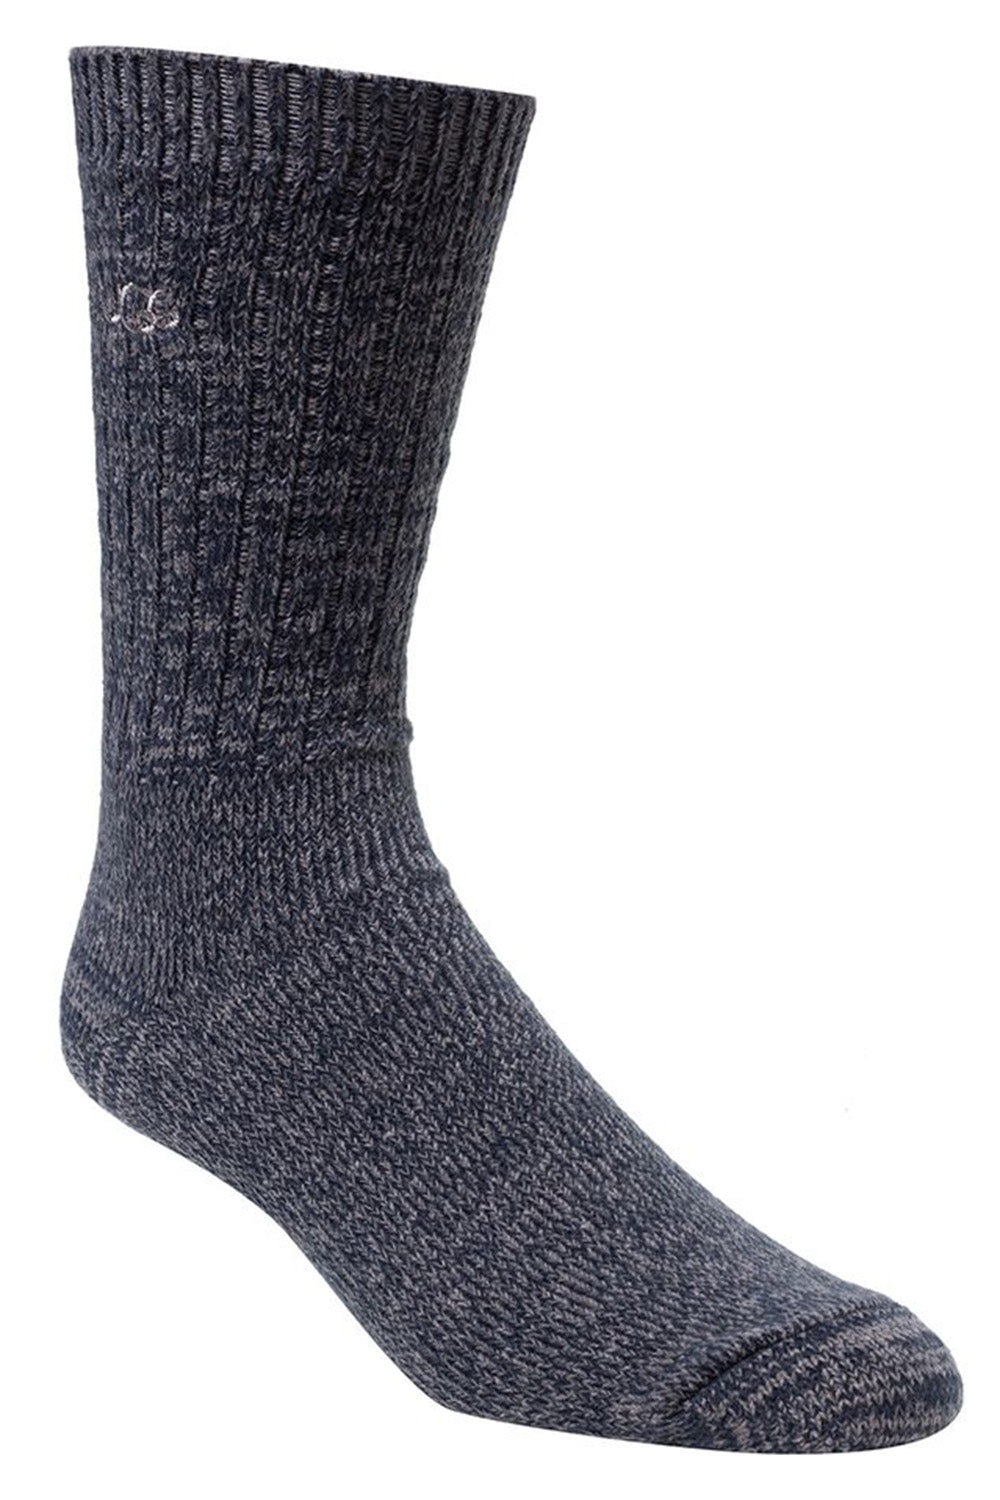 Men's Trey Rib Ugg Sock - Navy